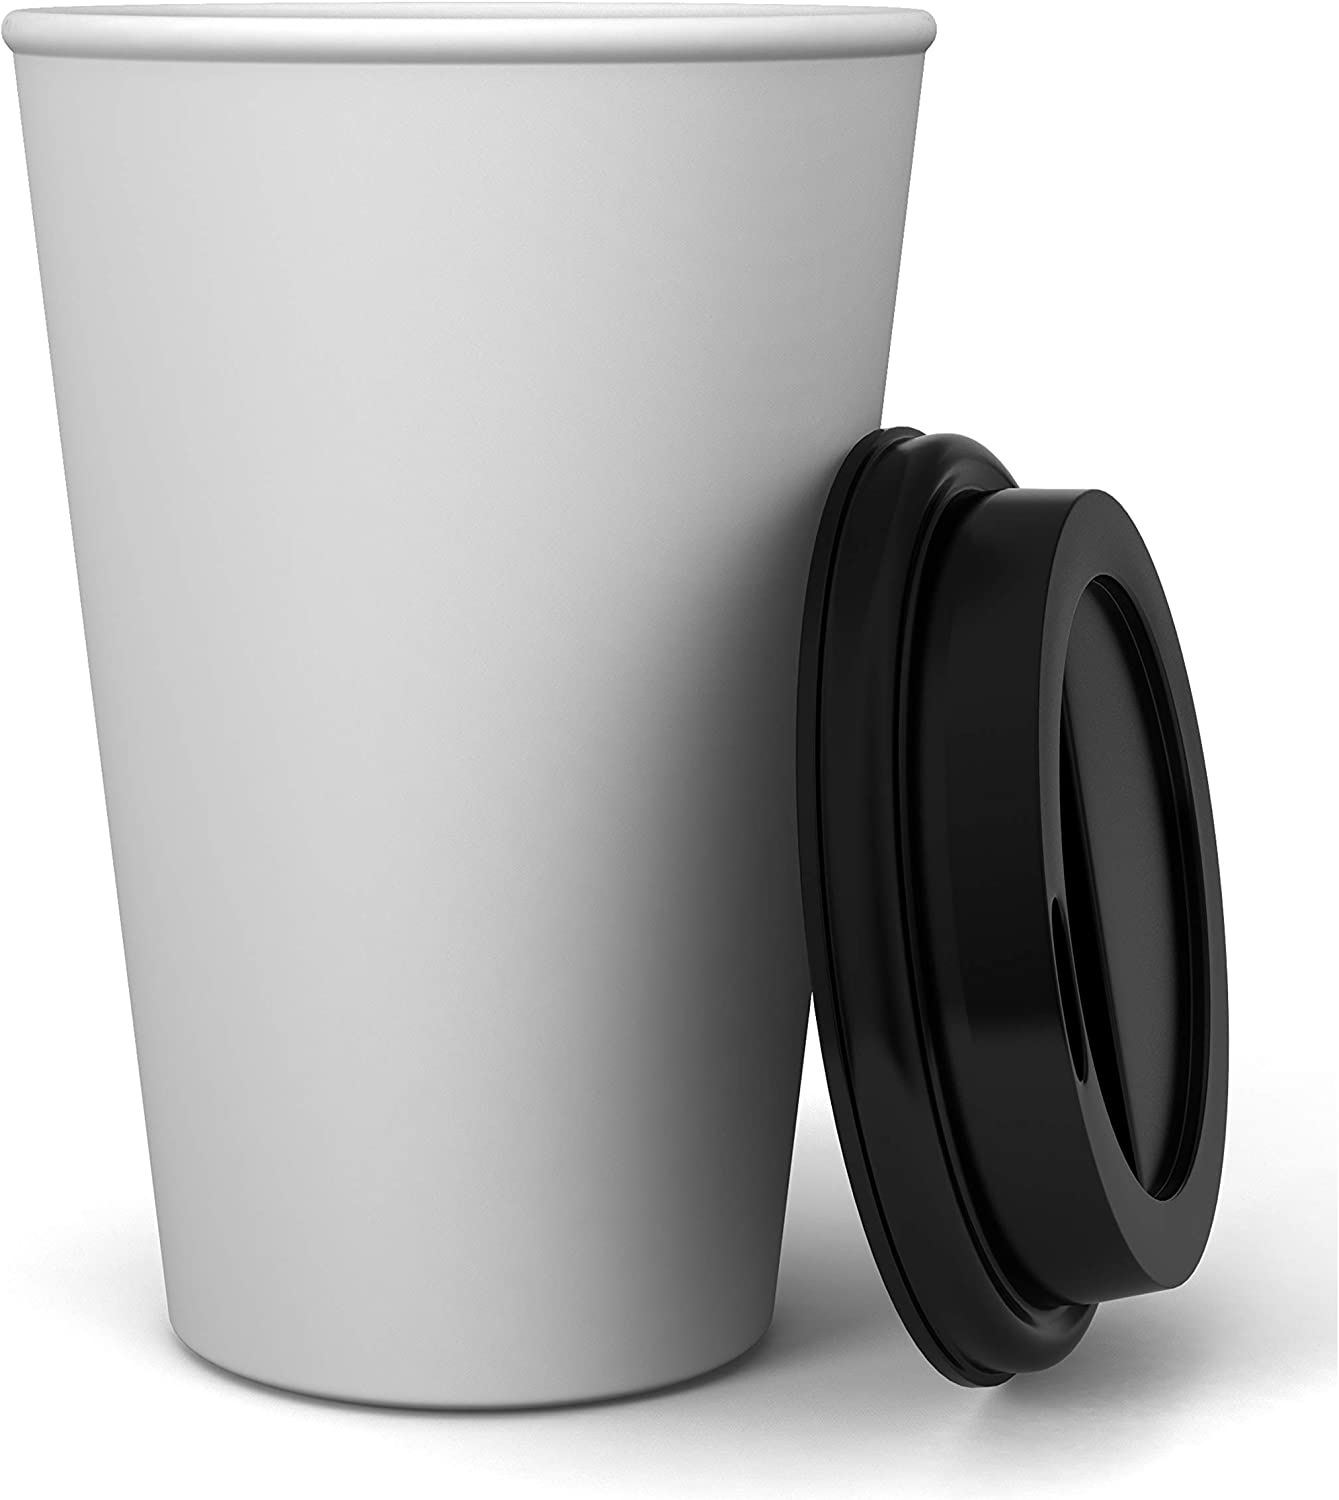 2 Pack of 125 ct - White Hot Drink Paper Cups 10 oz with Black Dome Lids - Disposable Coffee Cups, Recyclable, Compostable, Office, Breakrooms, Restaurants, Coffee Shops, Tea Shops, Latte, Chai